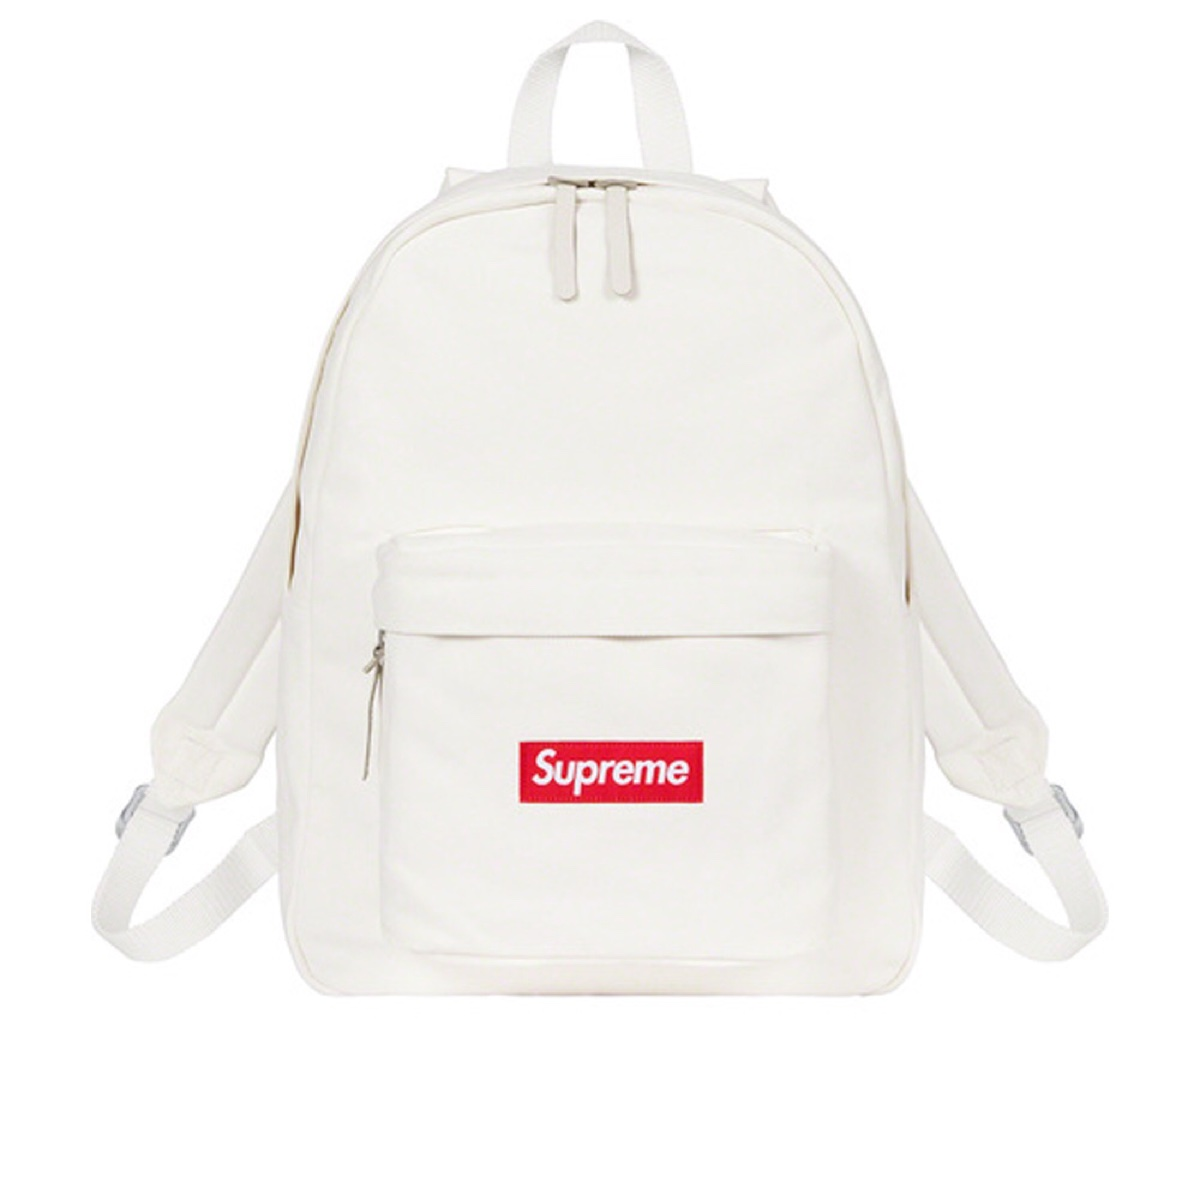 Supreme Canvas Backpack White